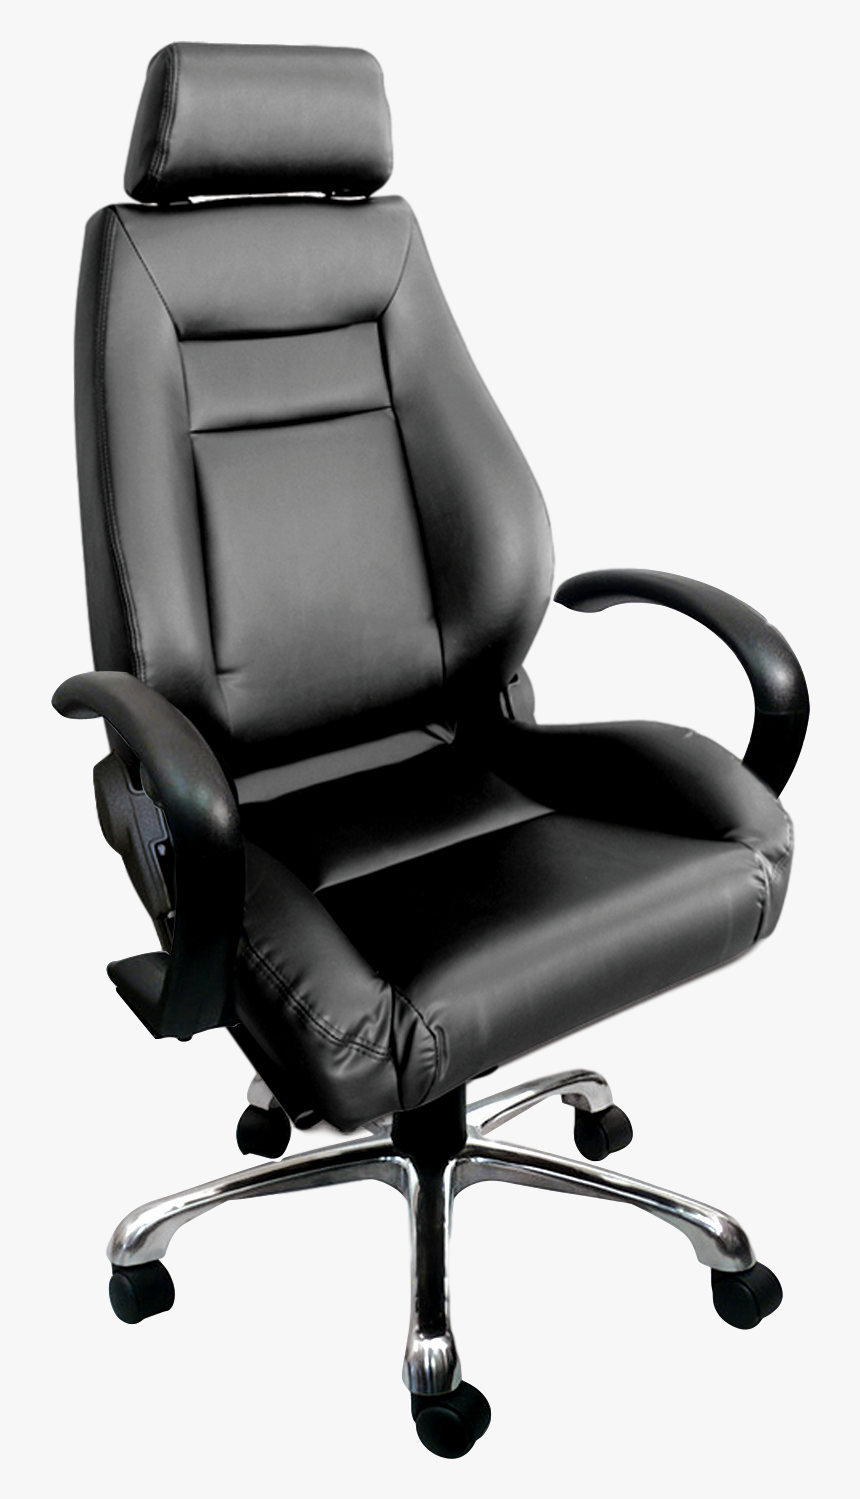 Elite™ Office Chair - Executive Office Chair, HD Png Download, Free Download